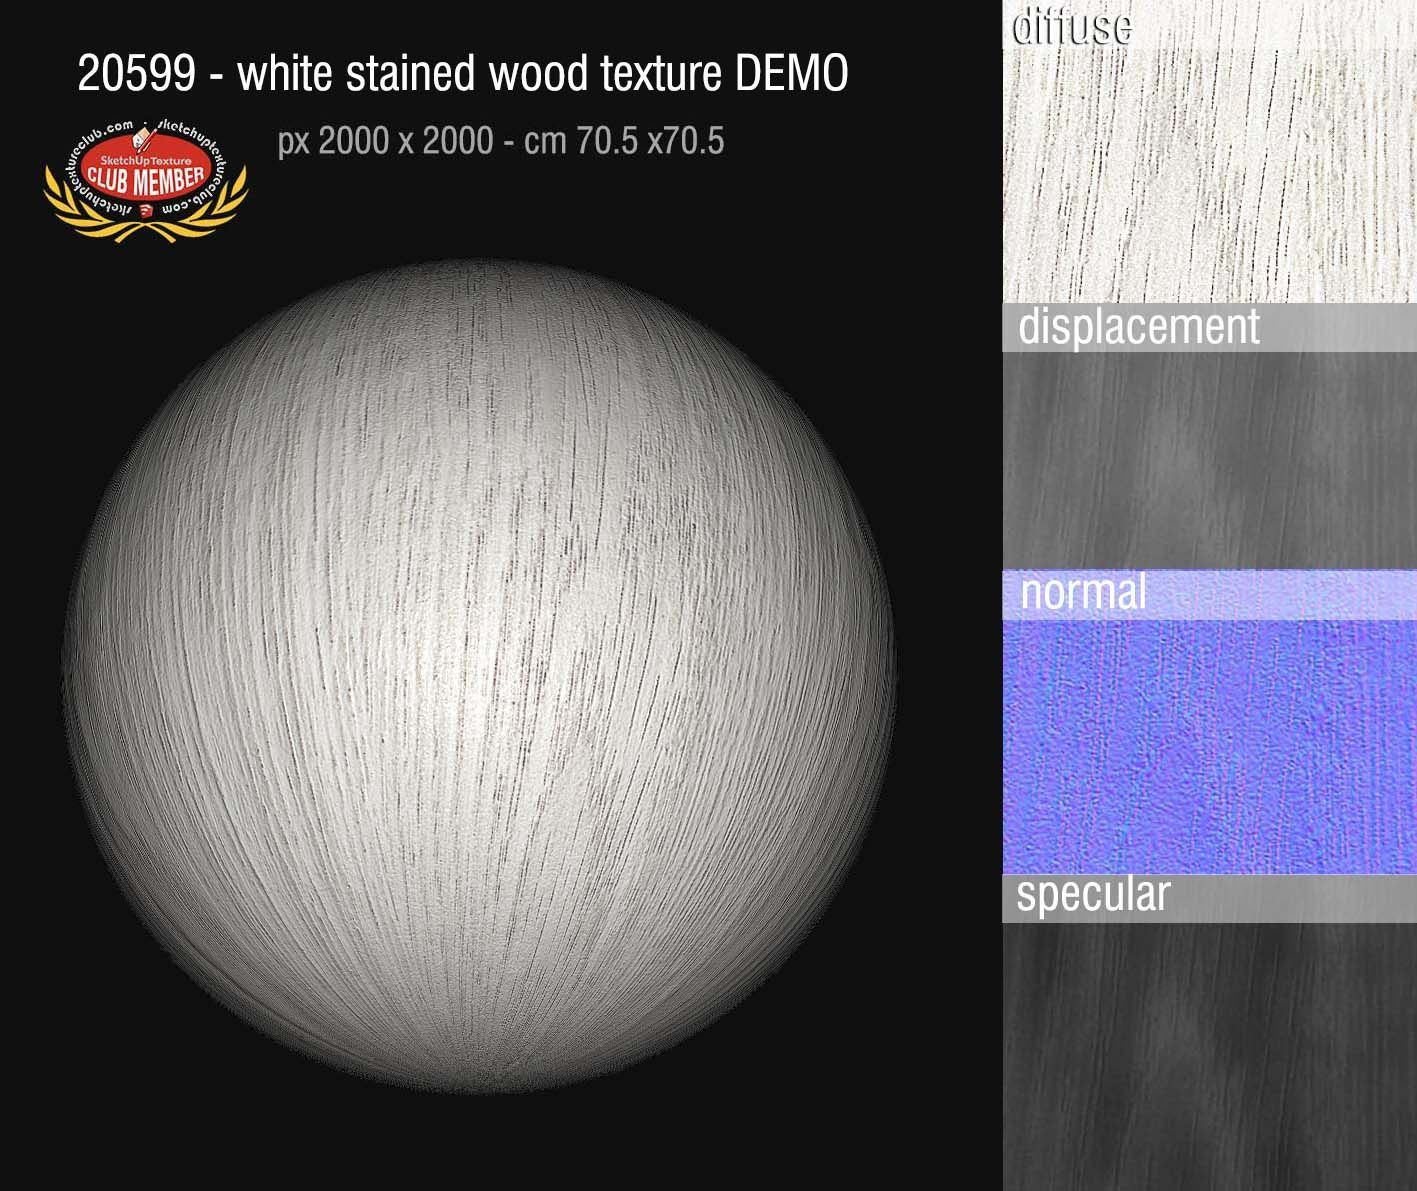 White stained wood texture seamless + maps #woodtextureseamless White stained wood texture seamless + maps #woodtextureseamless